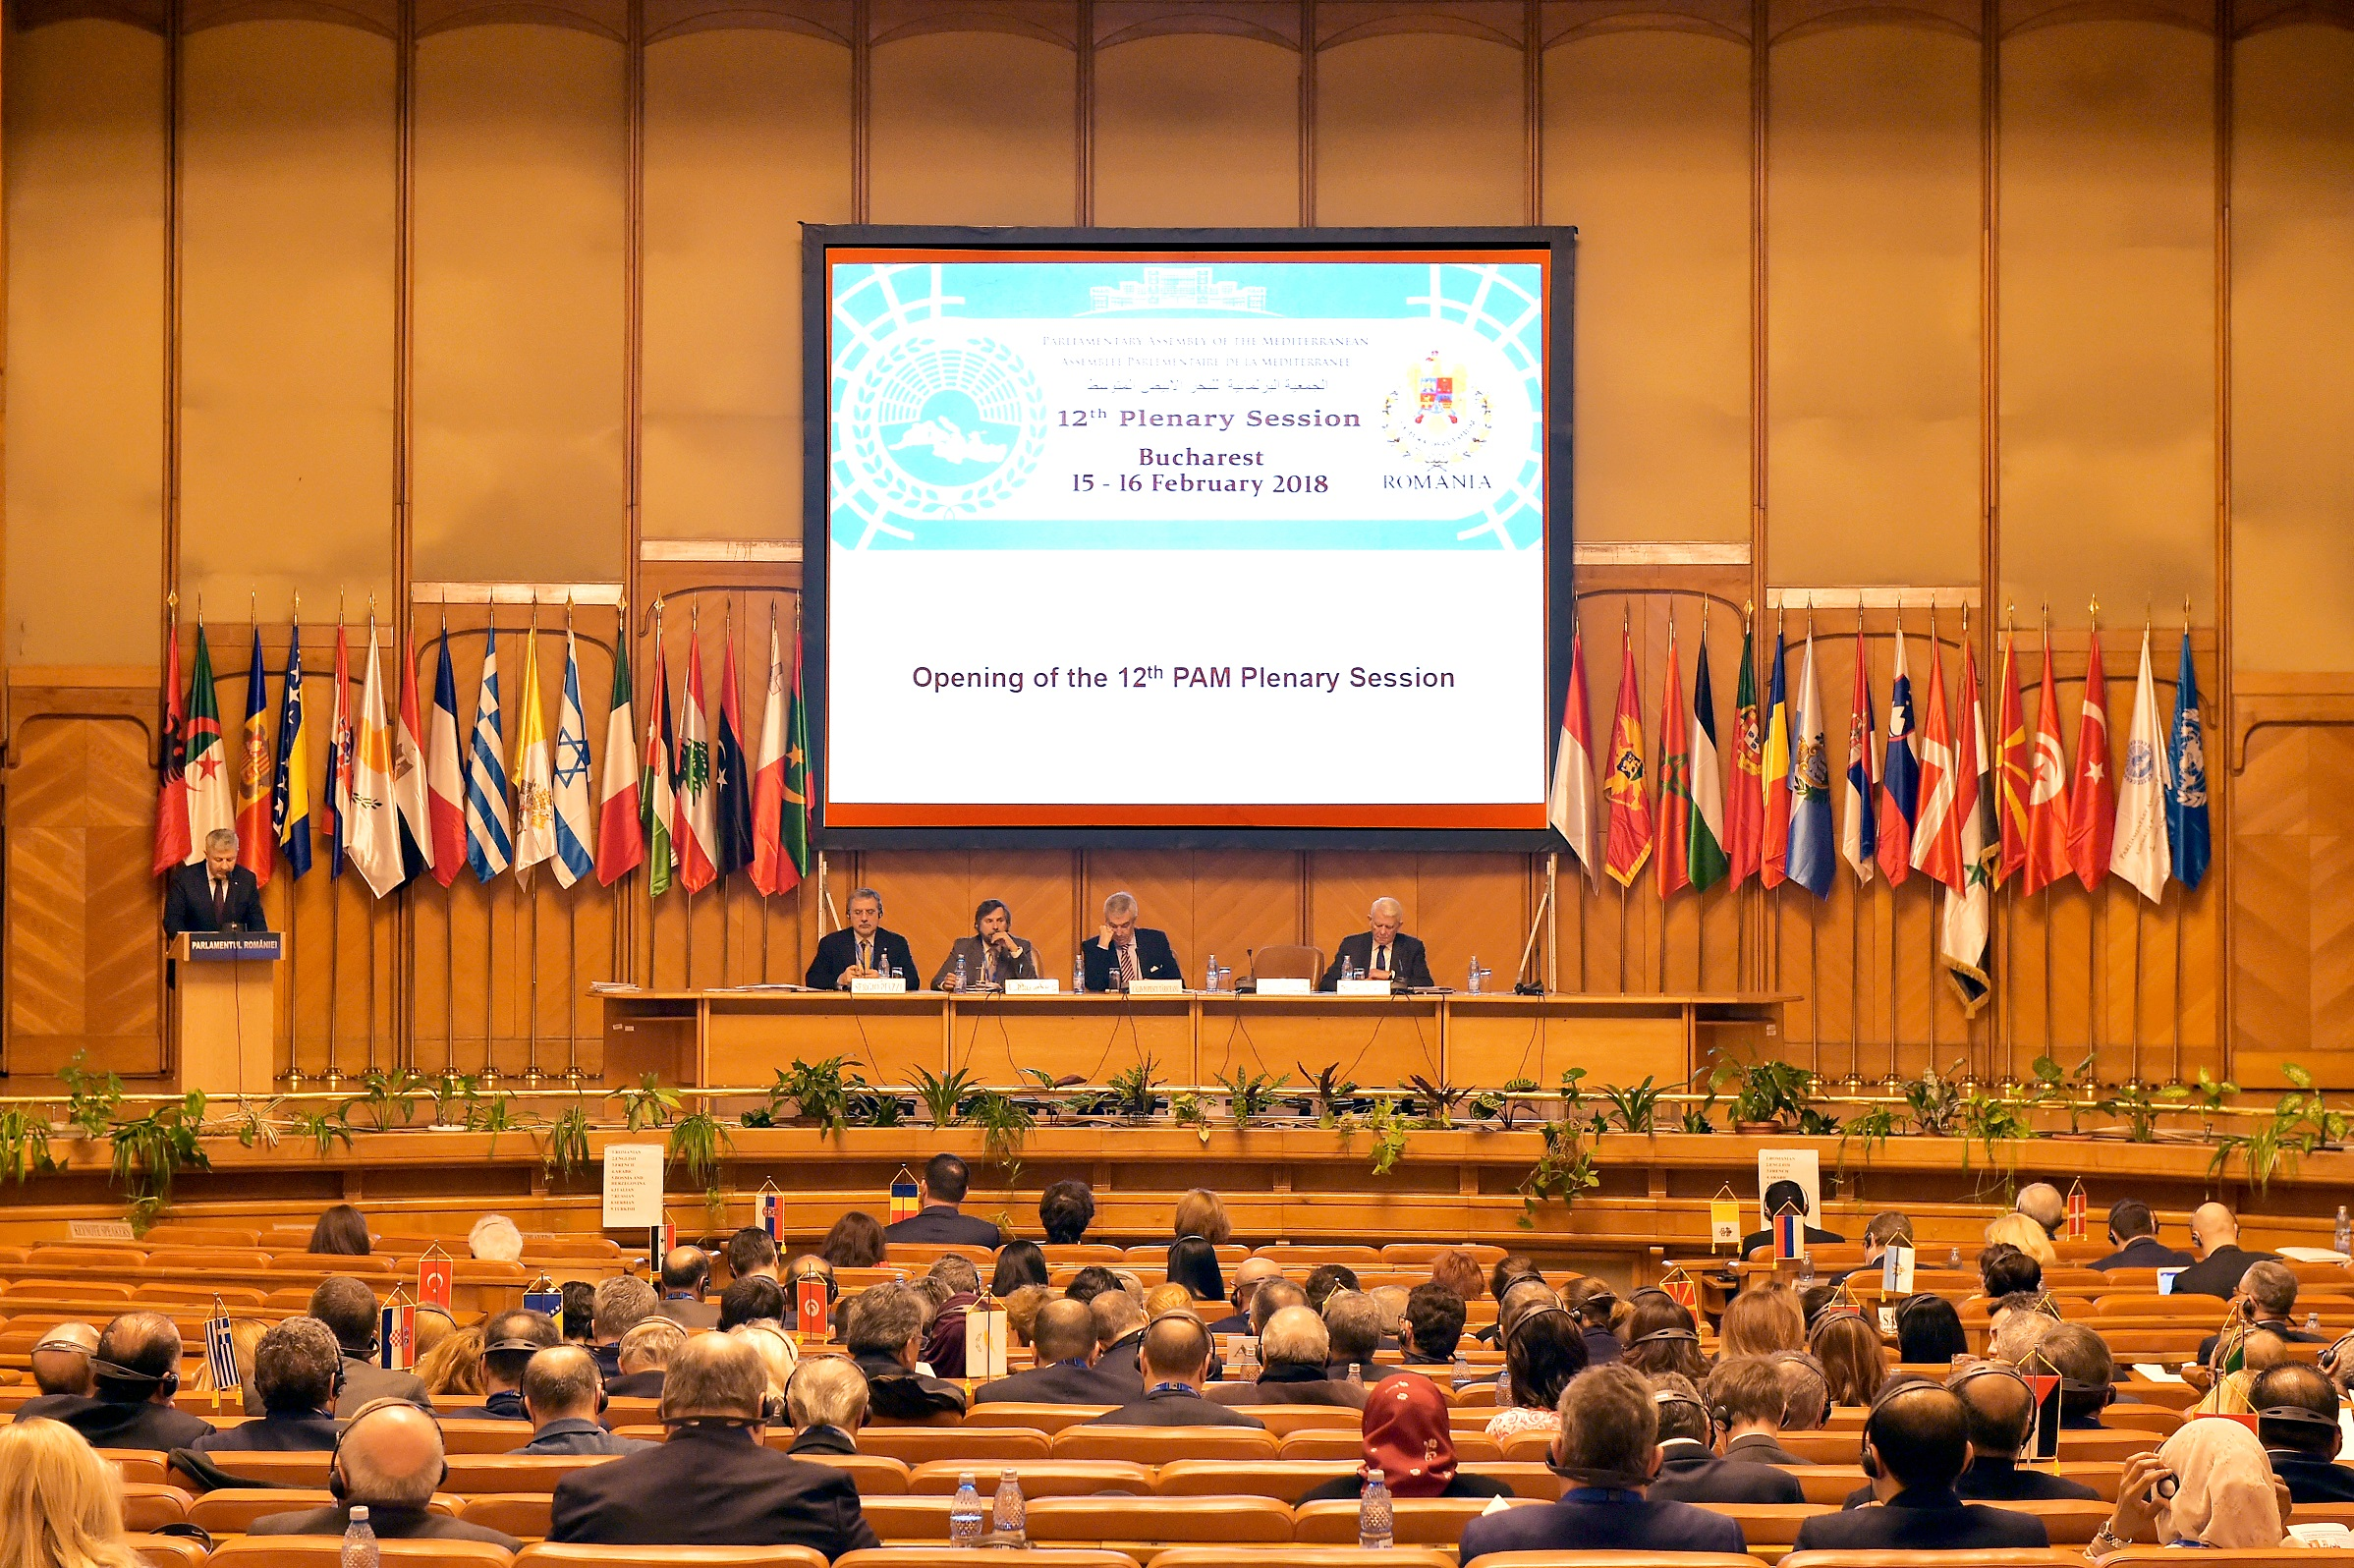 PAM 12th Plenary Session – Bucharest 15-16 February 2018 - 2nd Standing Committee